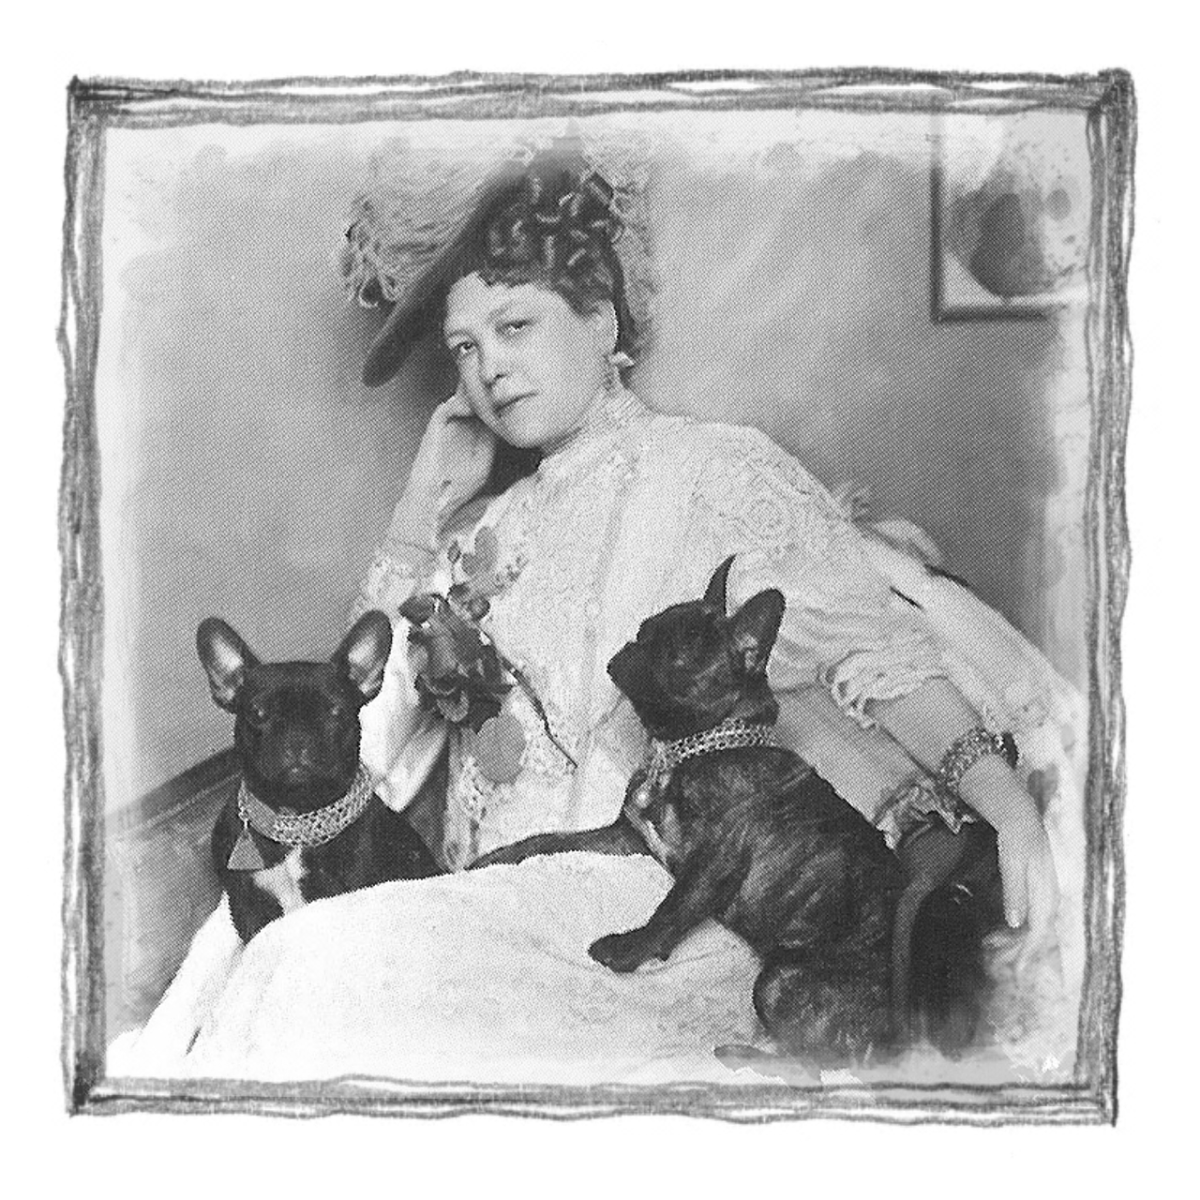 A photo of Esther Flint with her two French Bulldogs. Esther lived in our house but died in the early 1900s.